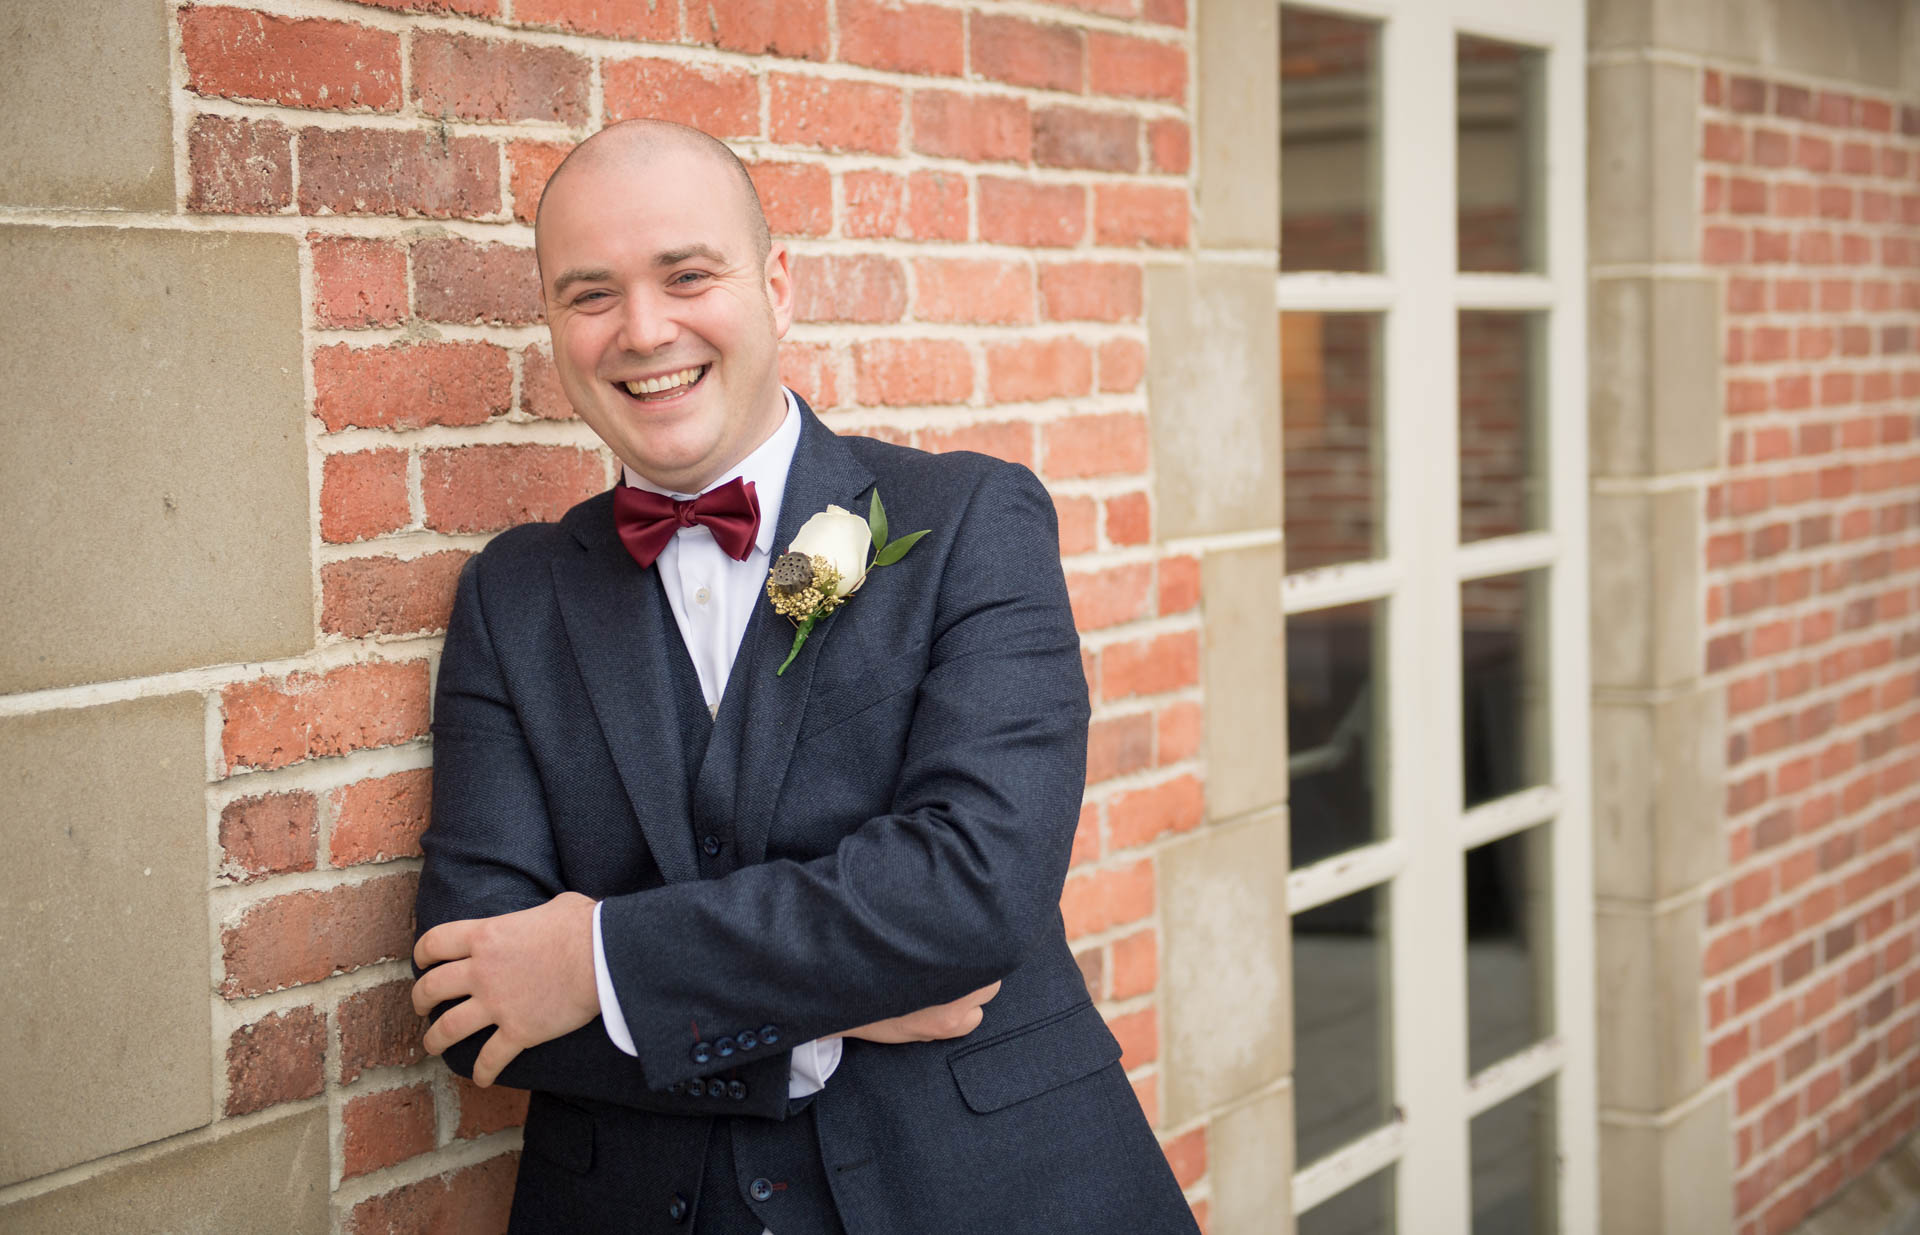 Picture of the groom ahead of the ceremony